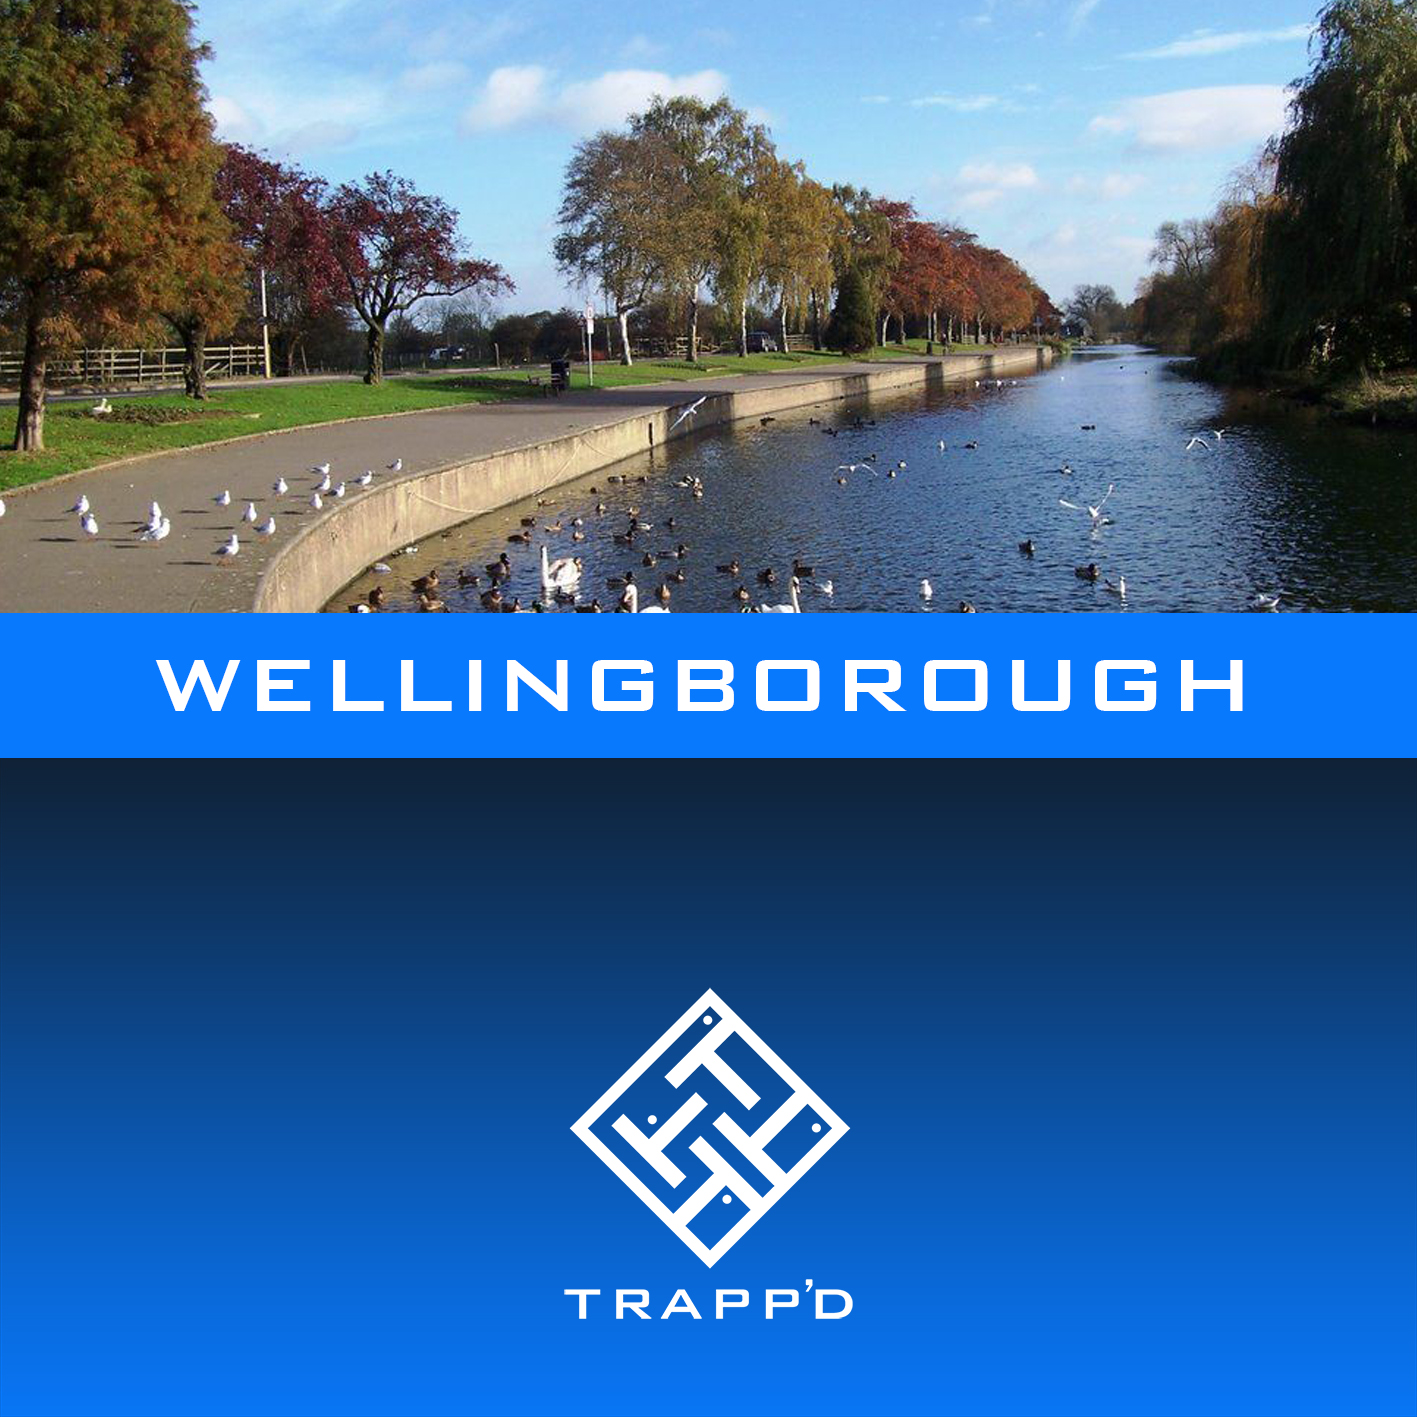 Trappd Wellingborough